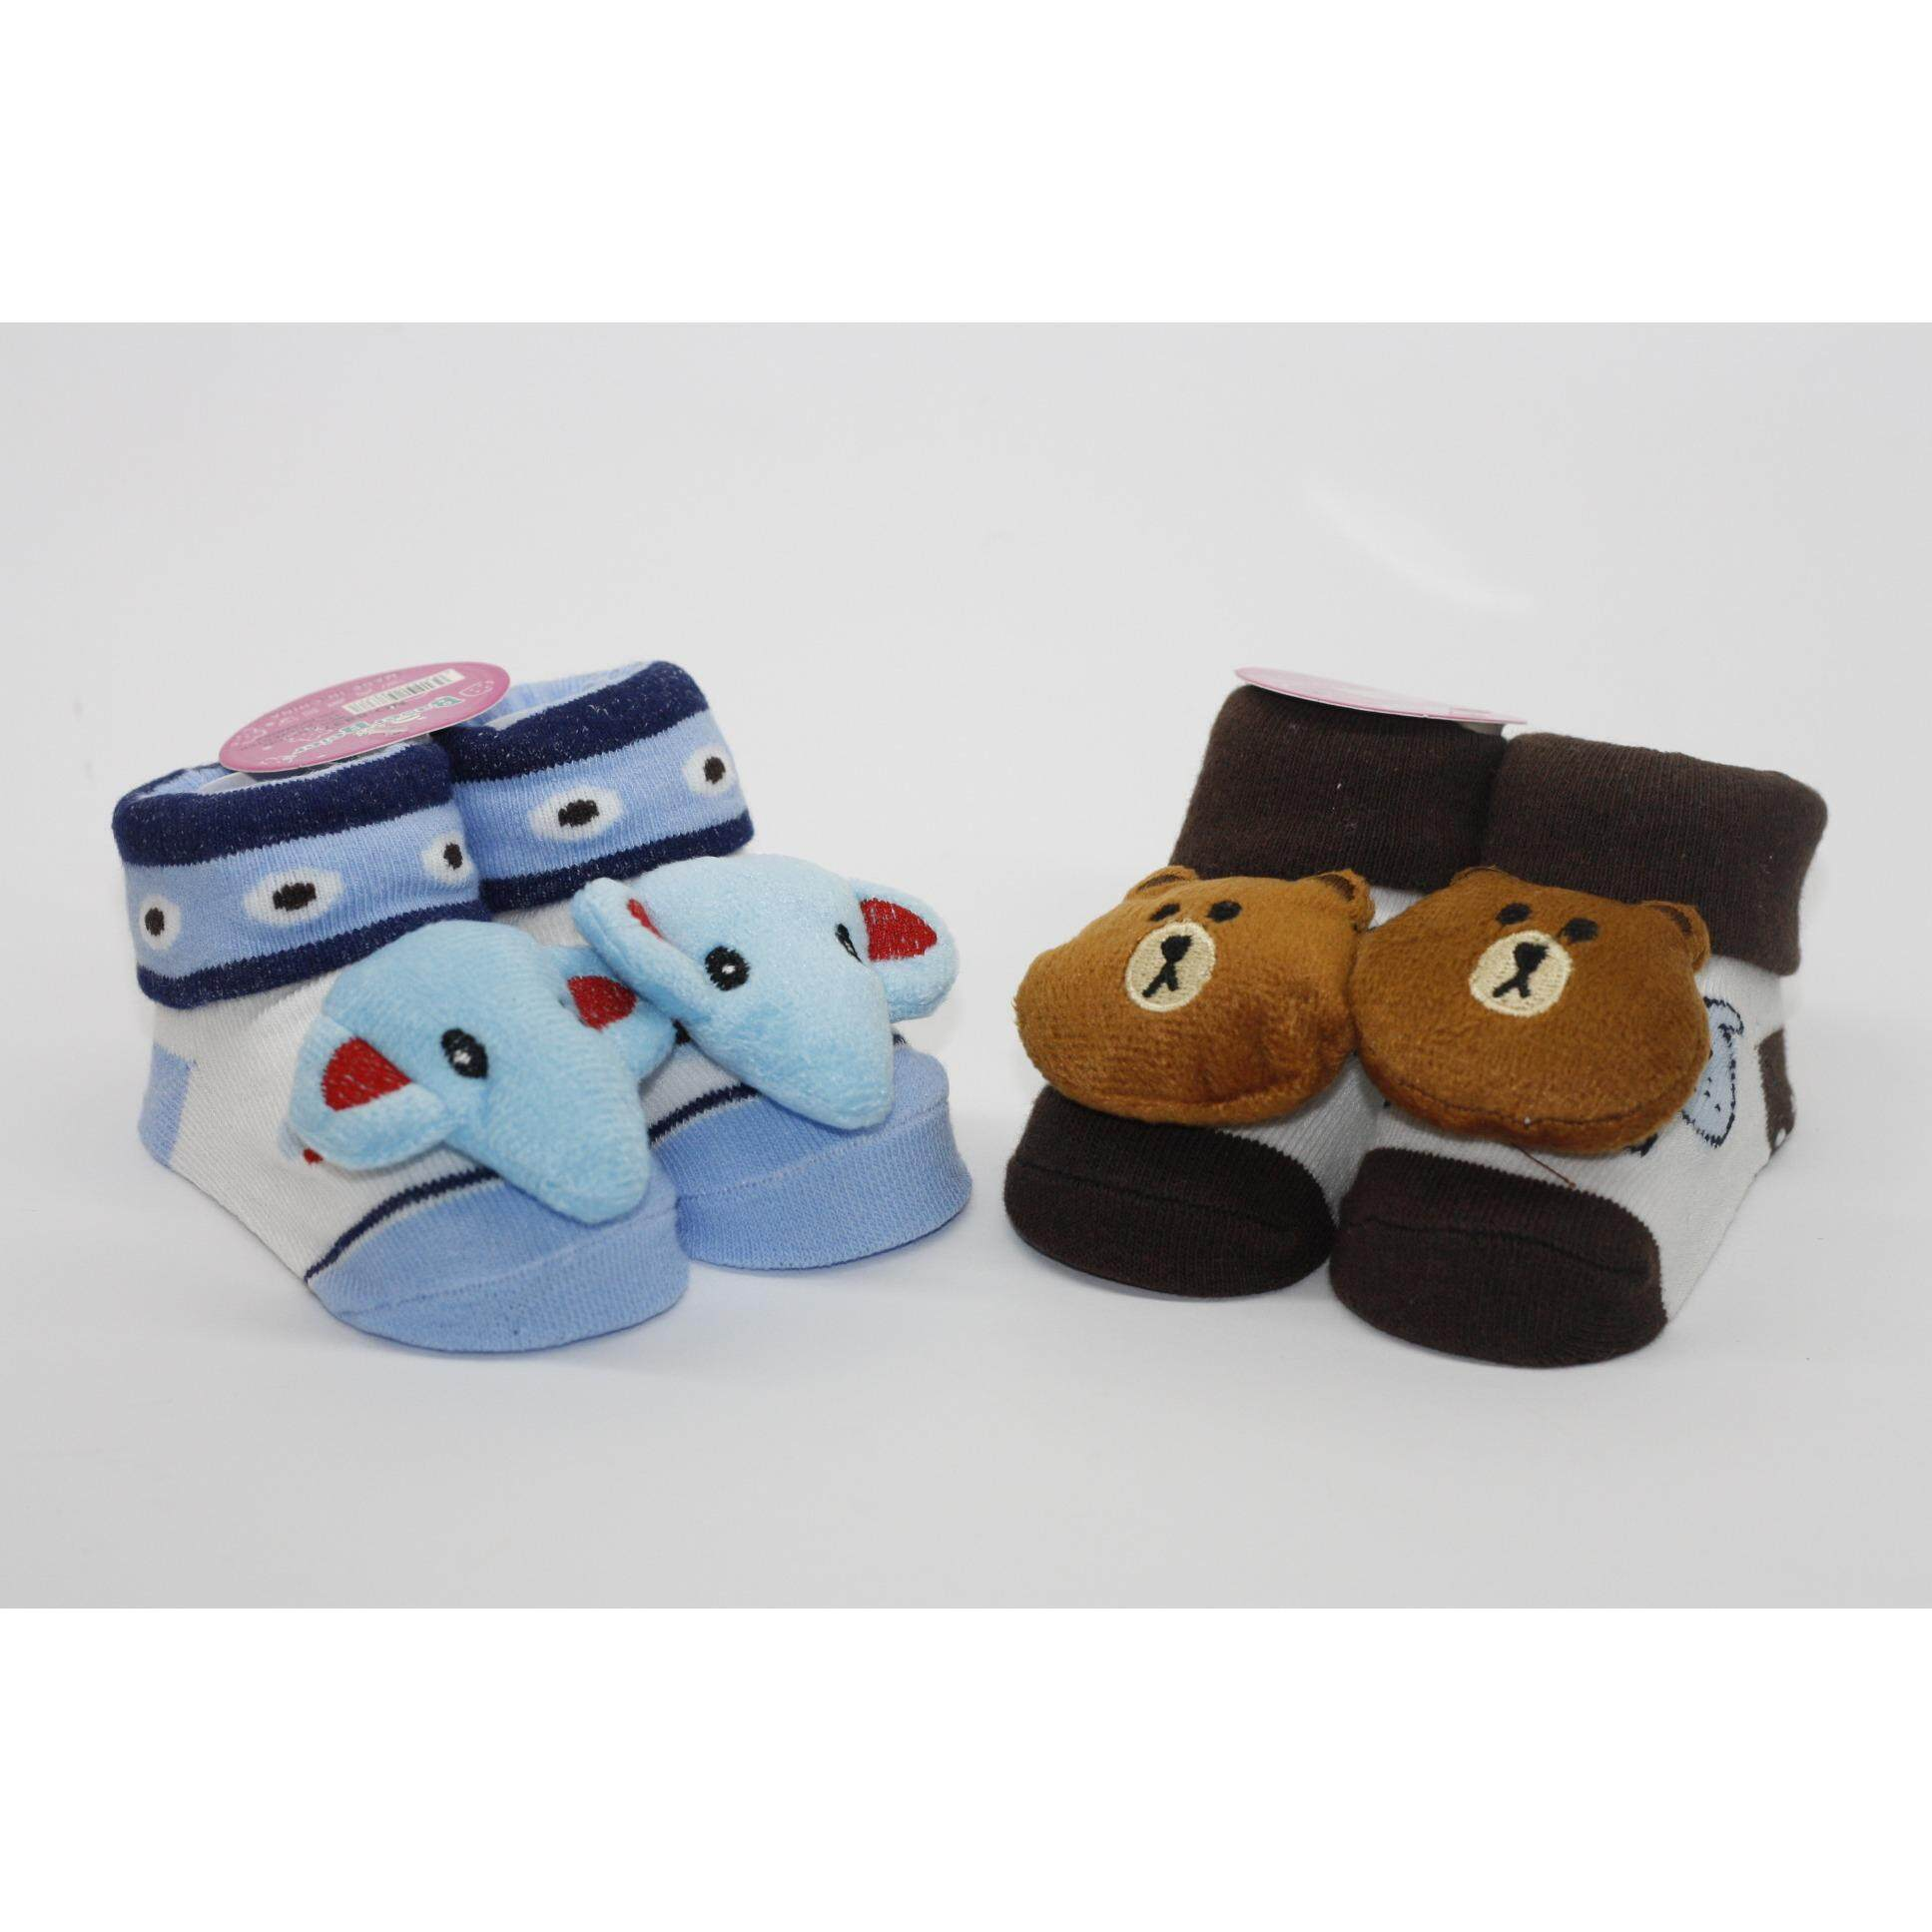 Baby Boys Accessories Socks Buy Baby Boys Accessories Socks